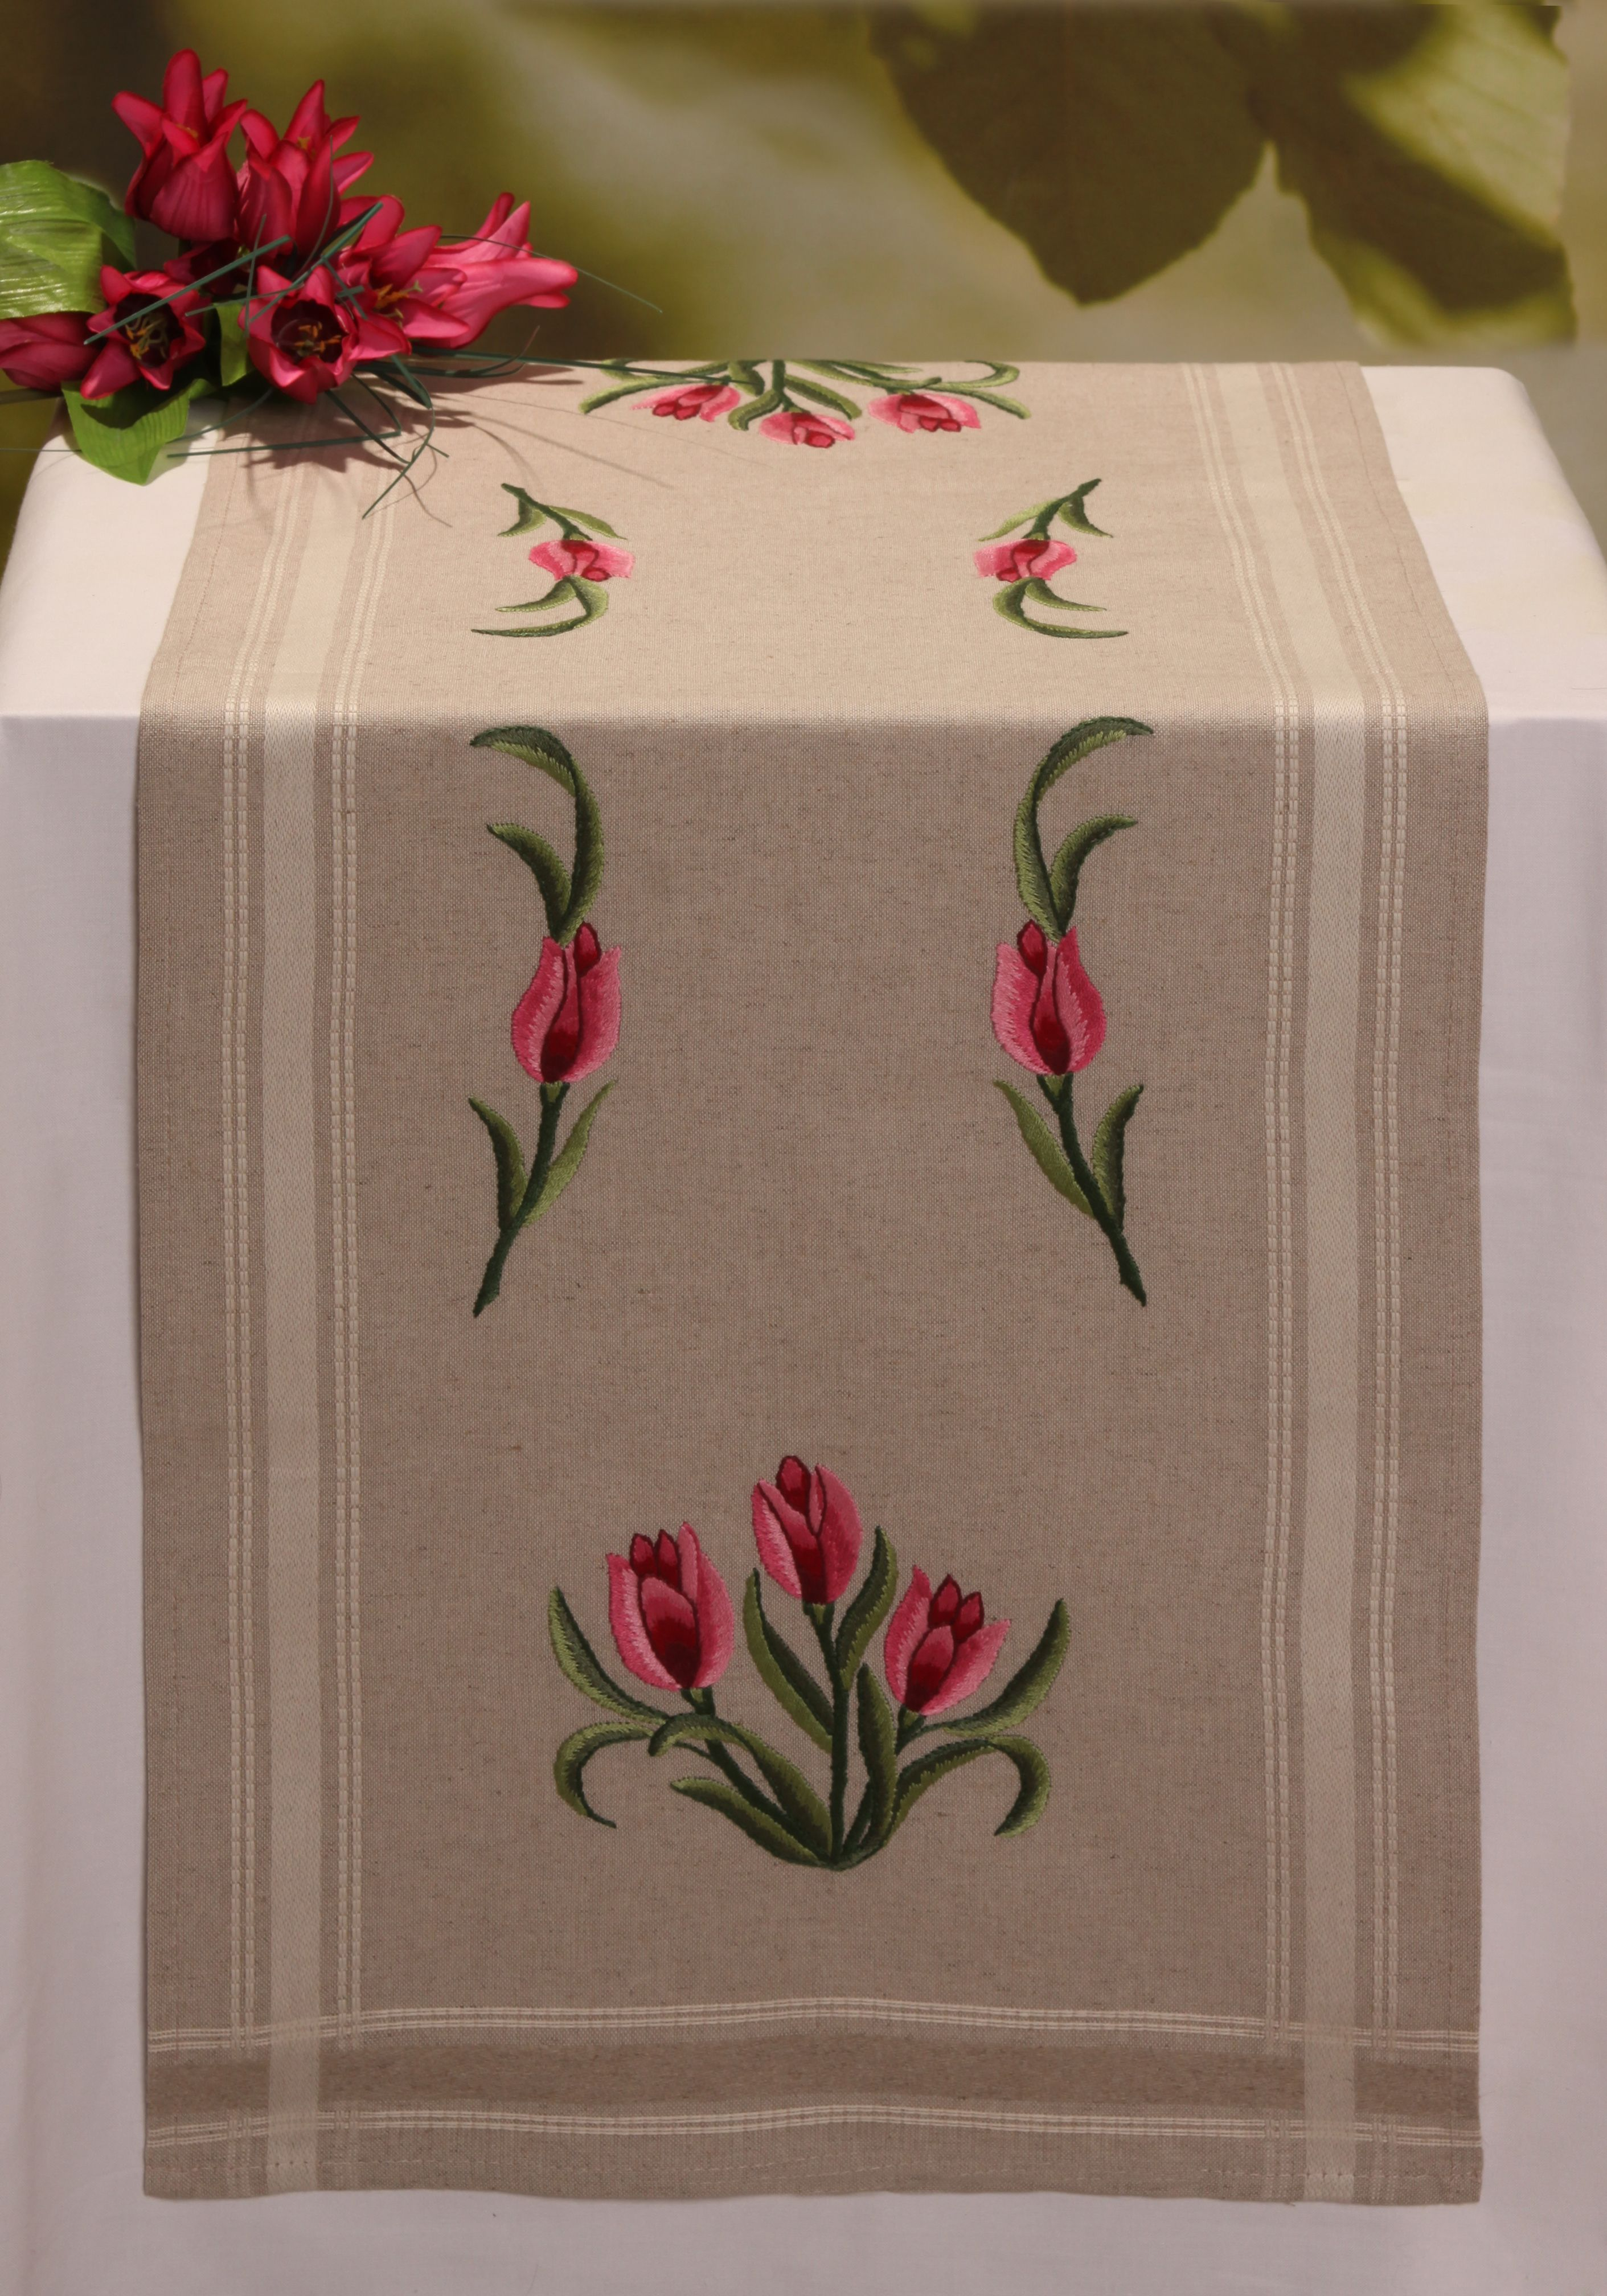 Applique designs for tablecloth - Find This Pin And More On Machine Stitch Embroidery Appliqu Borders